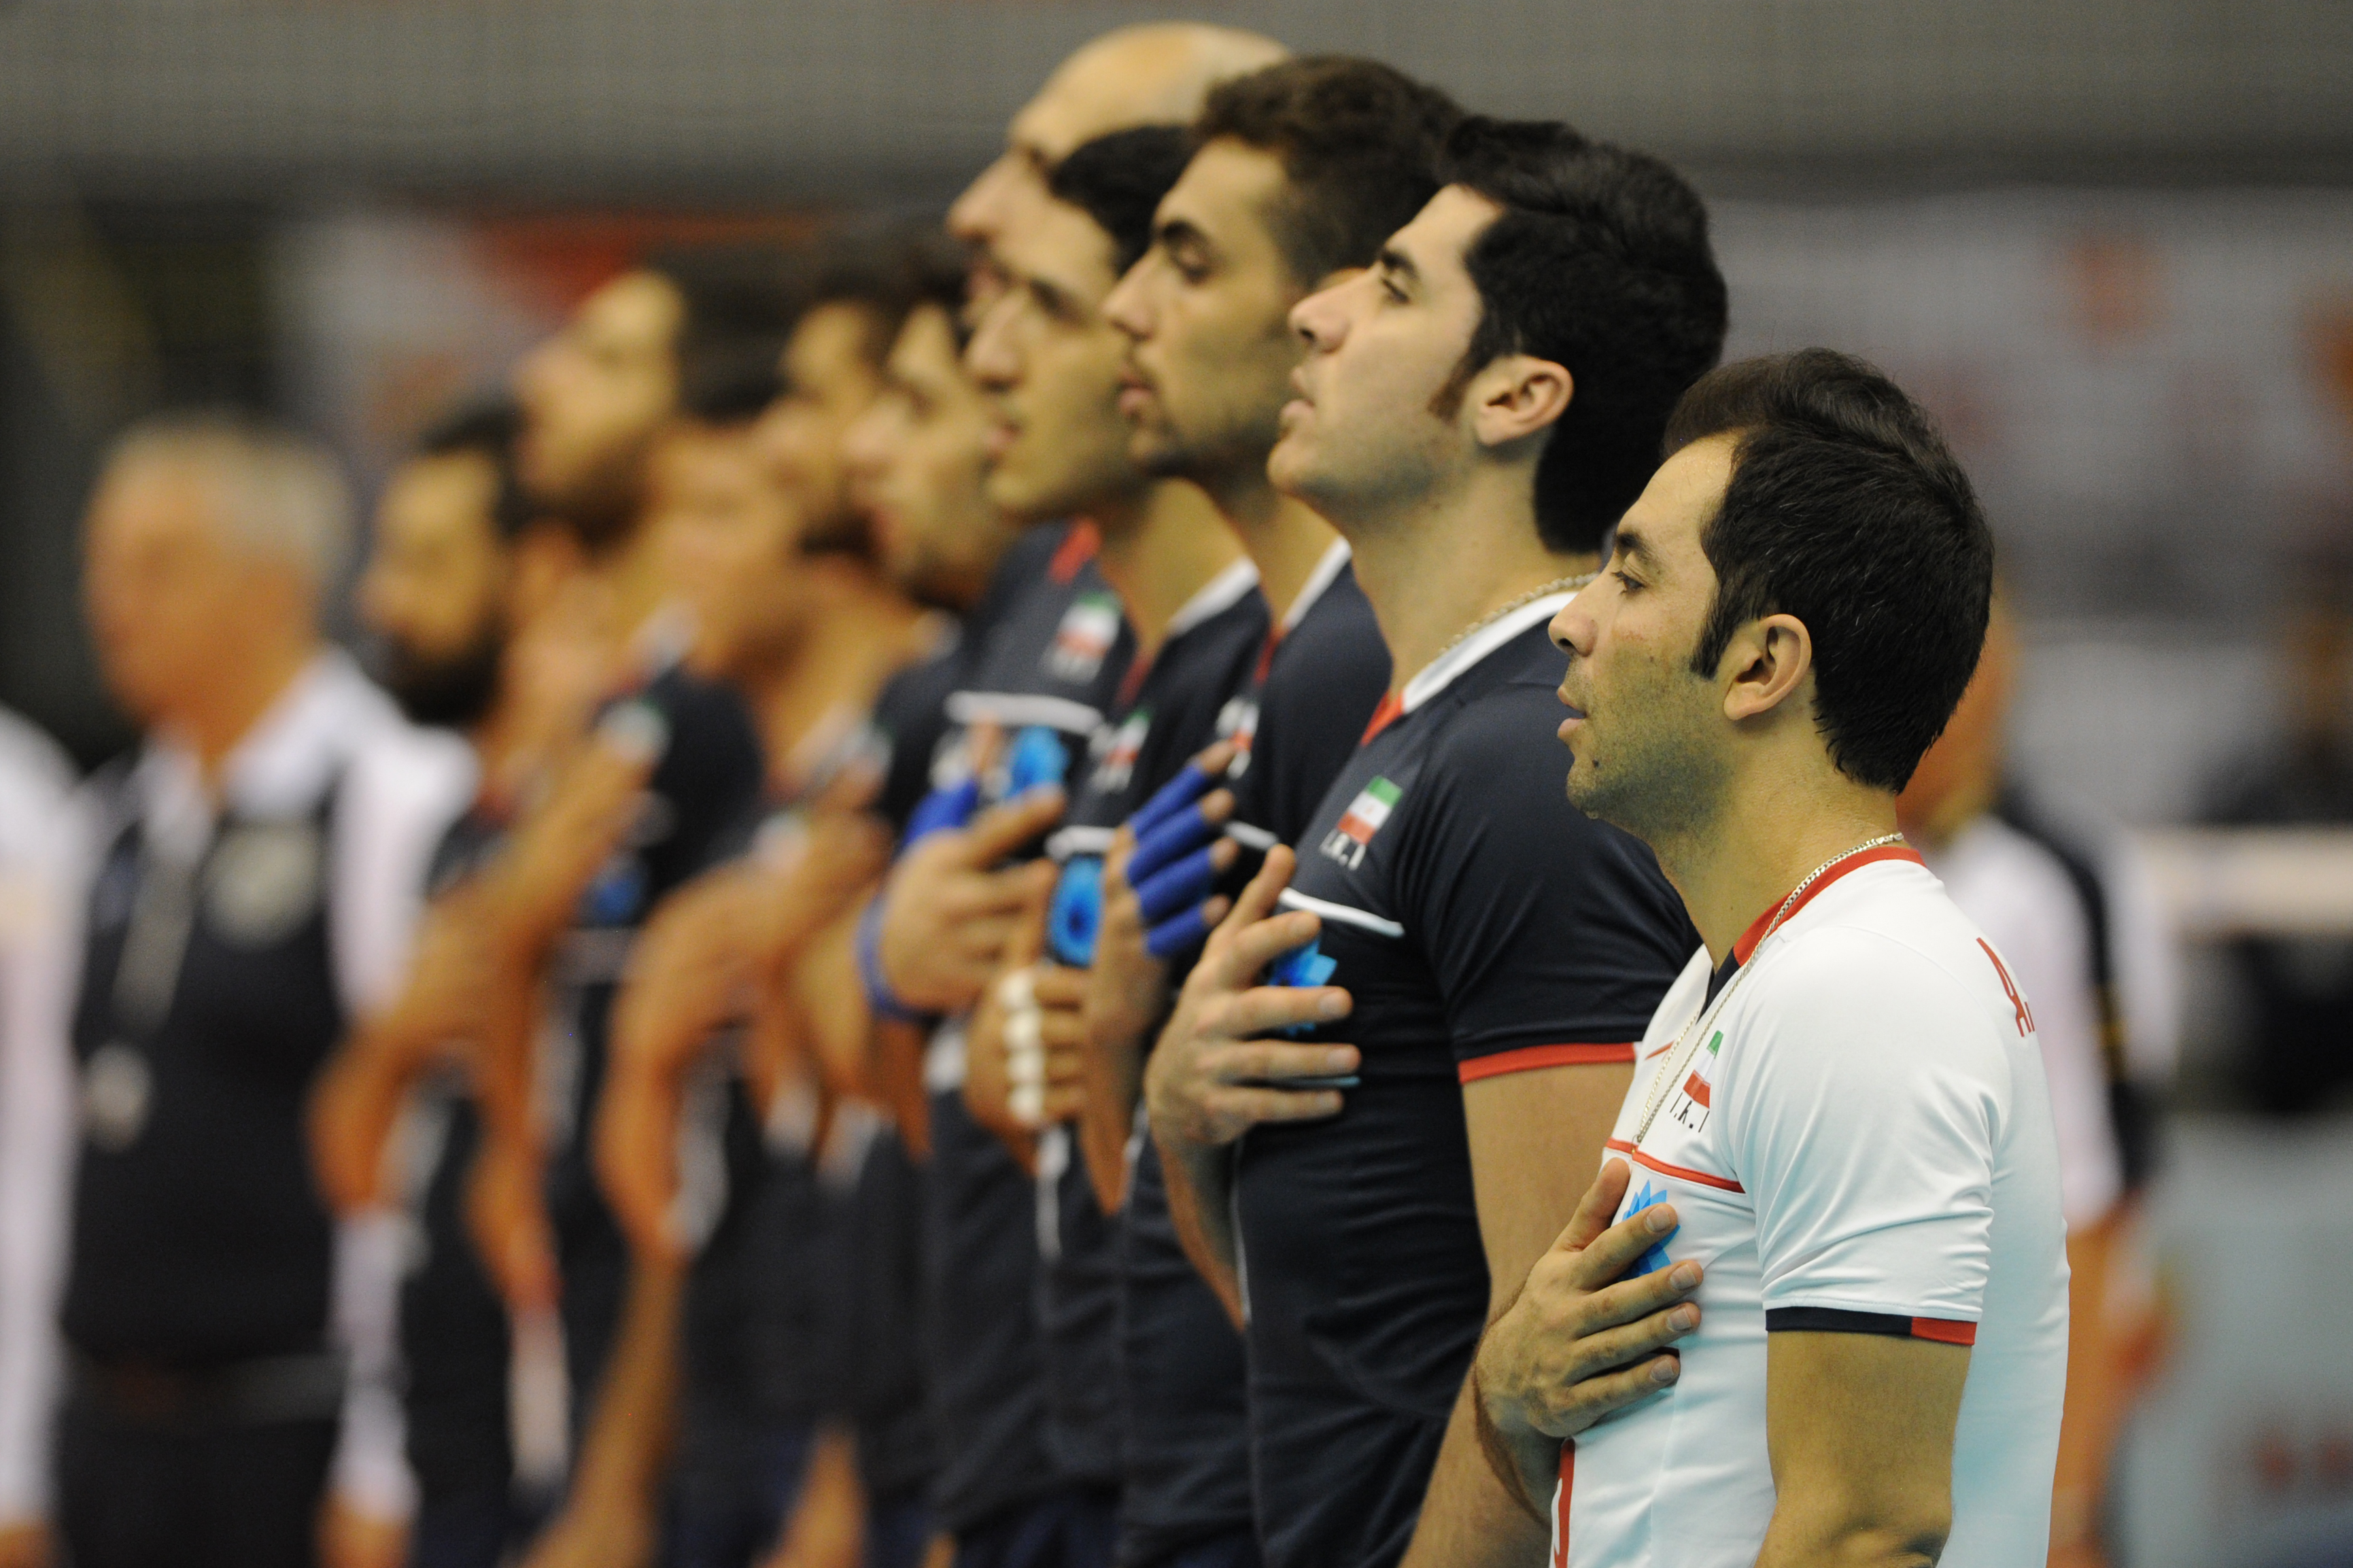 http://www.fivb.org/Vis2009/Images/GetImage.asmx?No=201516981&width=900&height=600&stretch=uniform